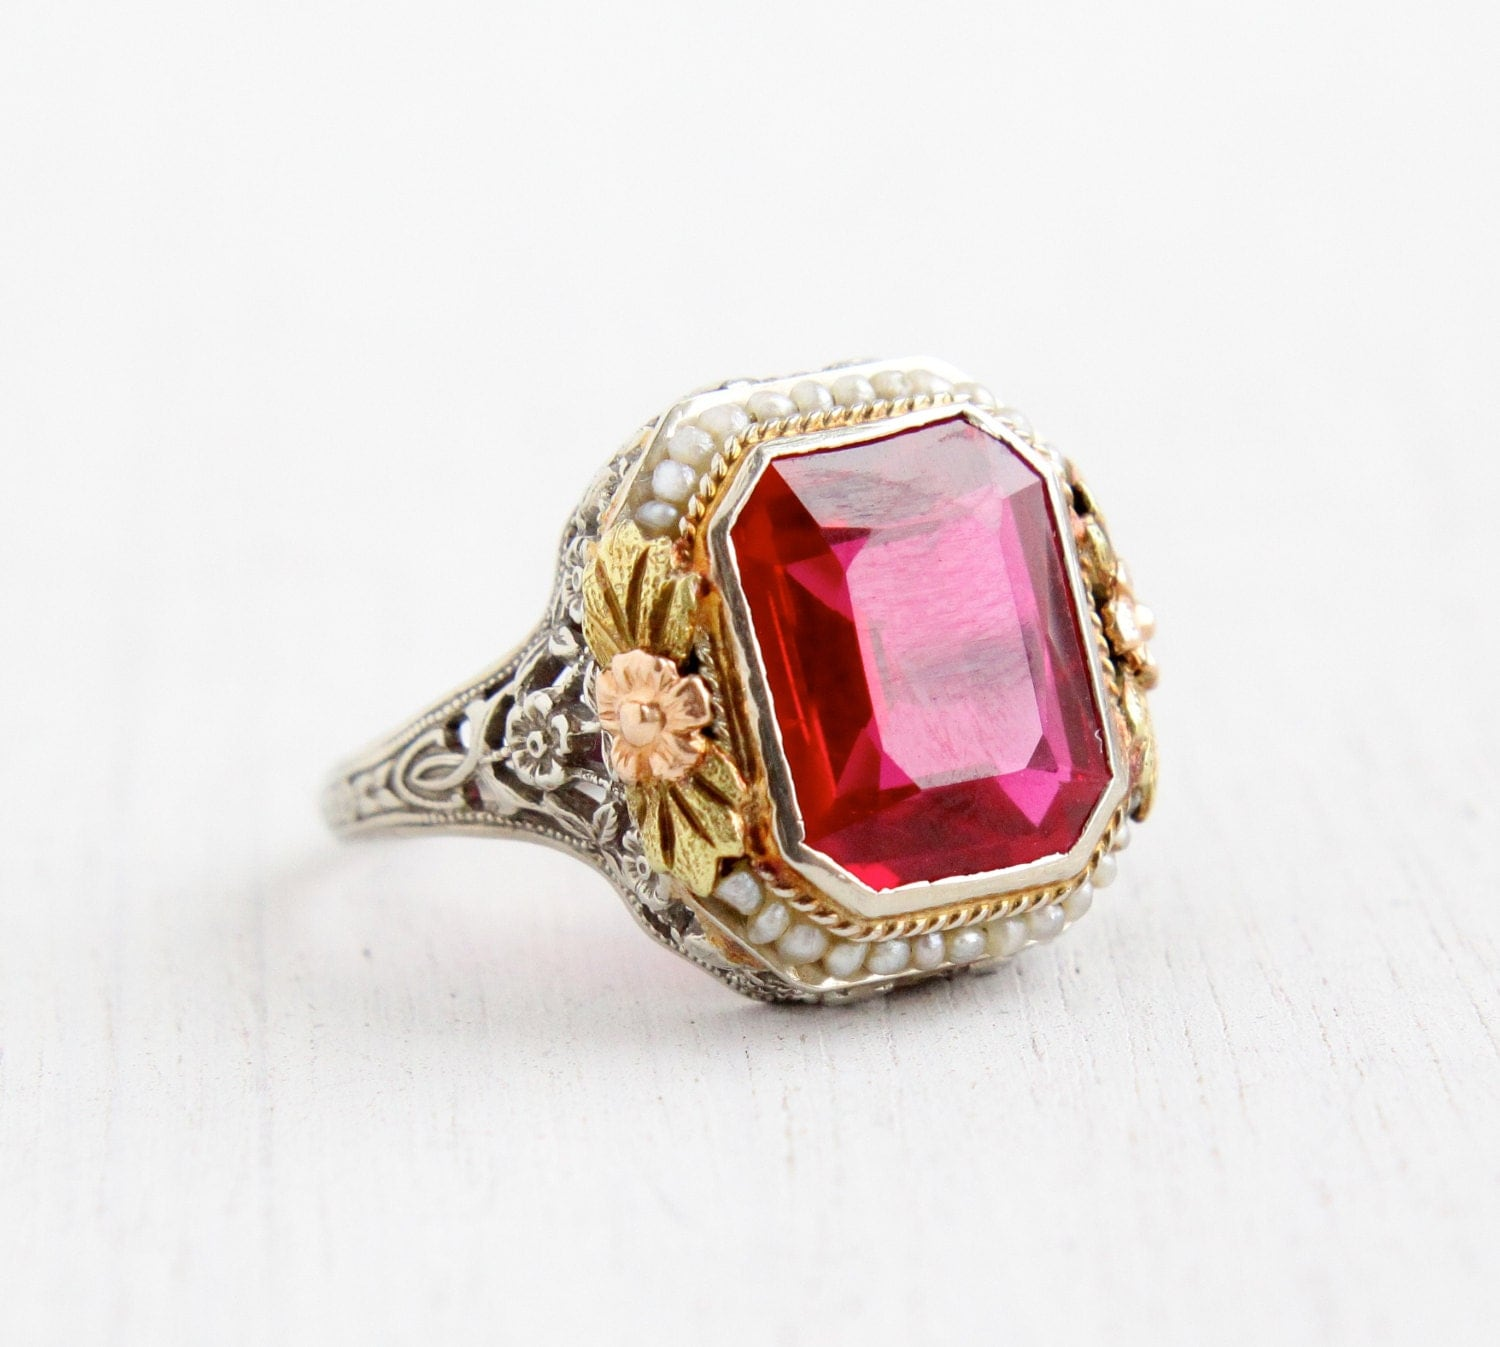 Antique 14k White Gold Ruby Amp Seed Pearl Ring Size 8 Vintage